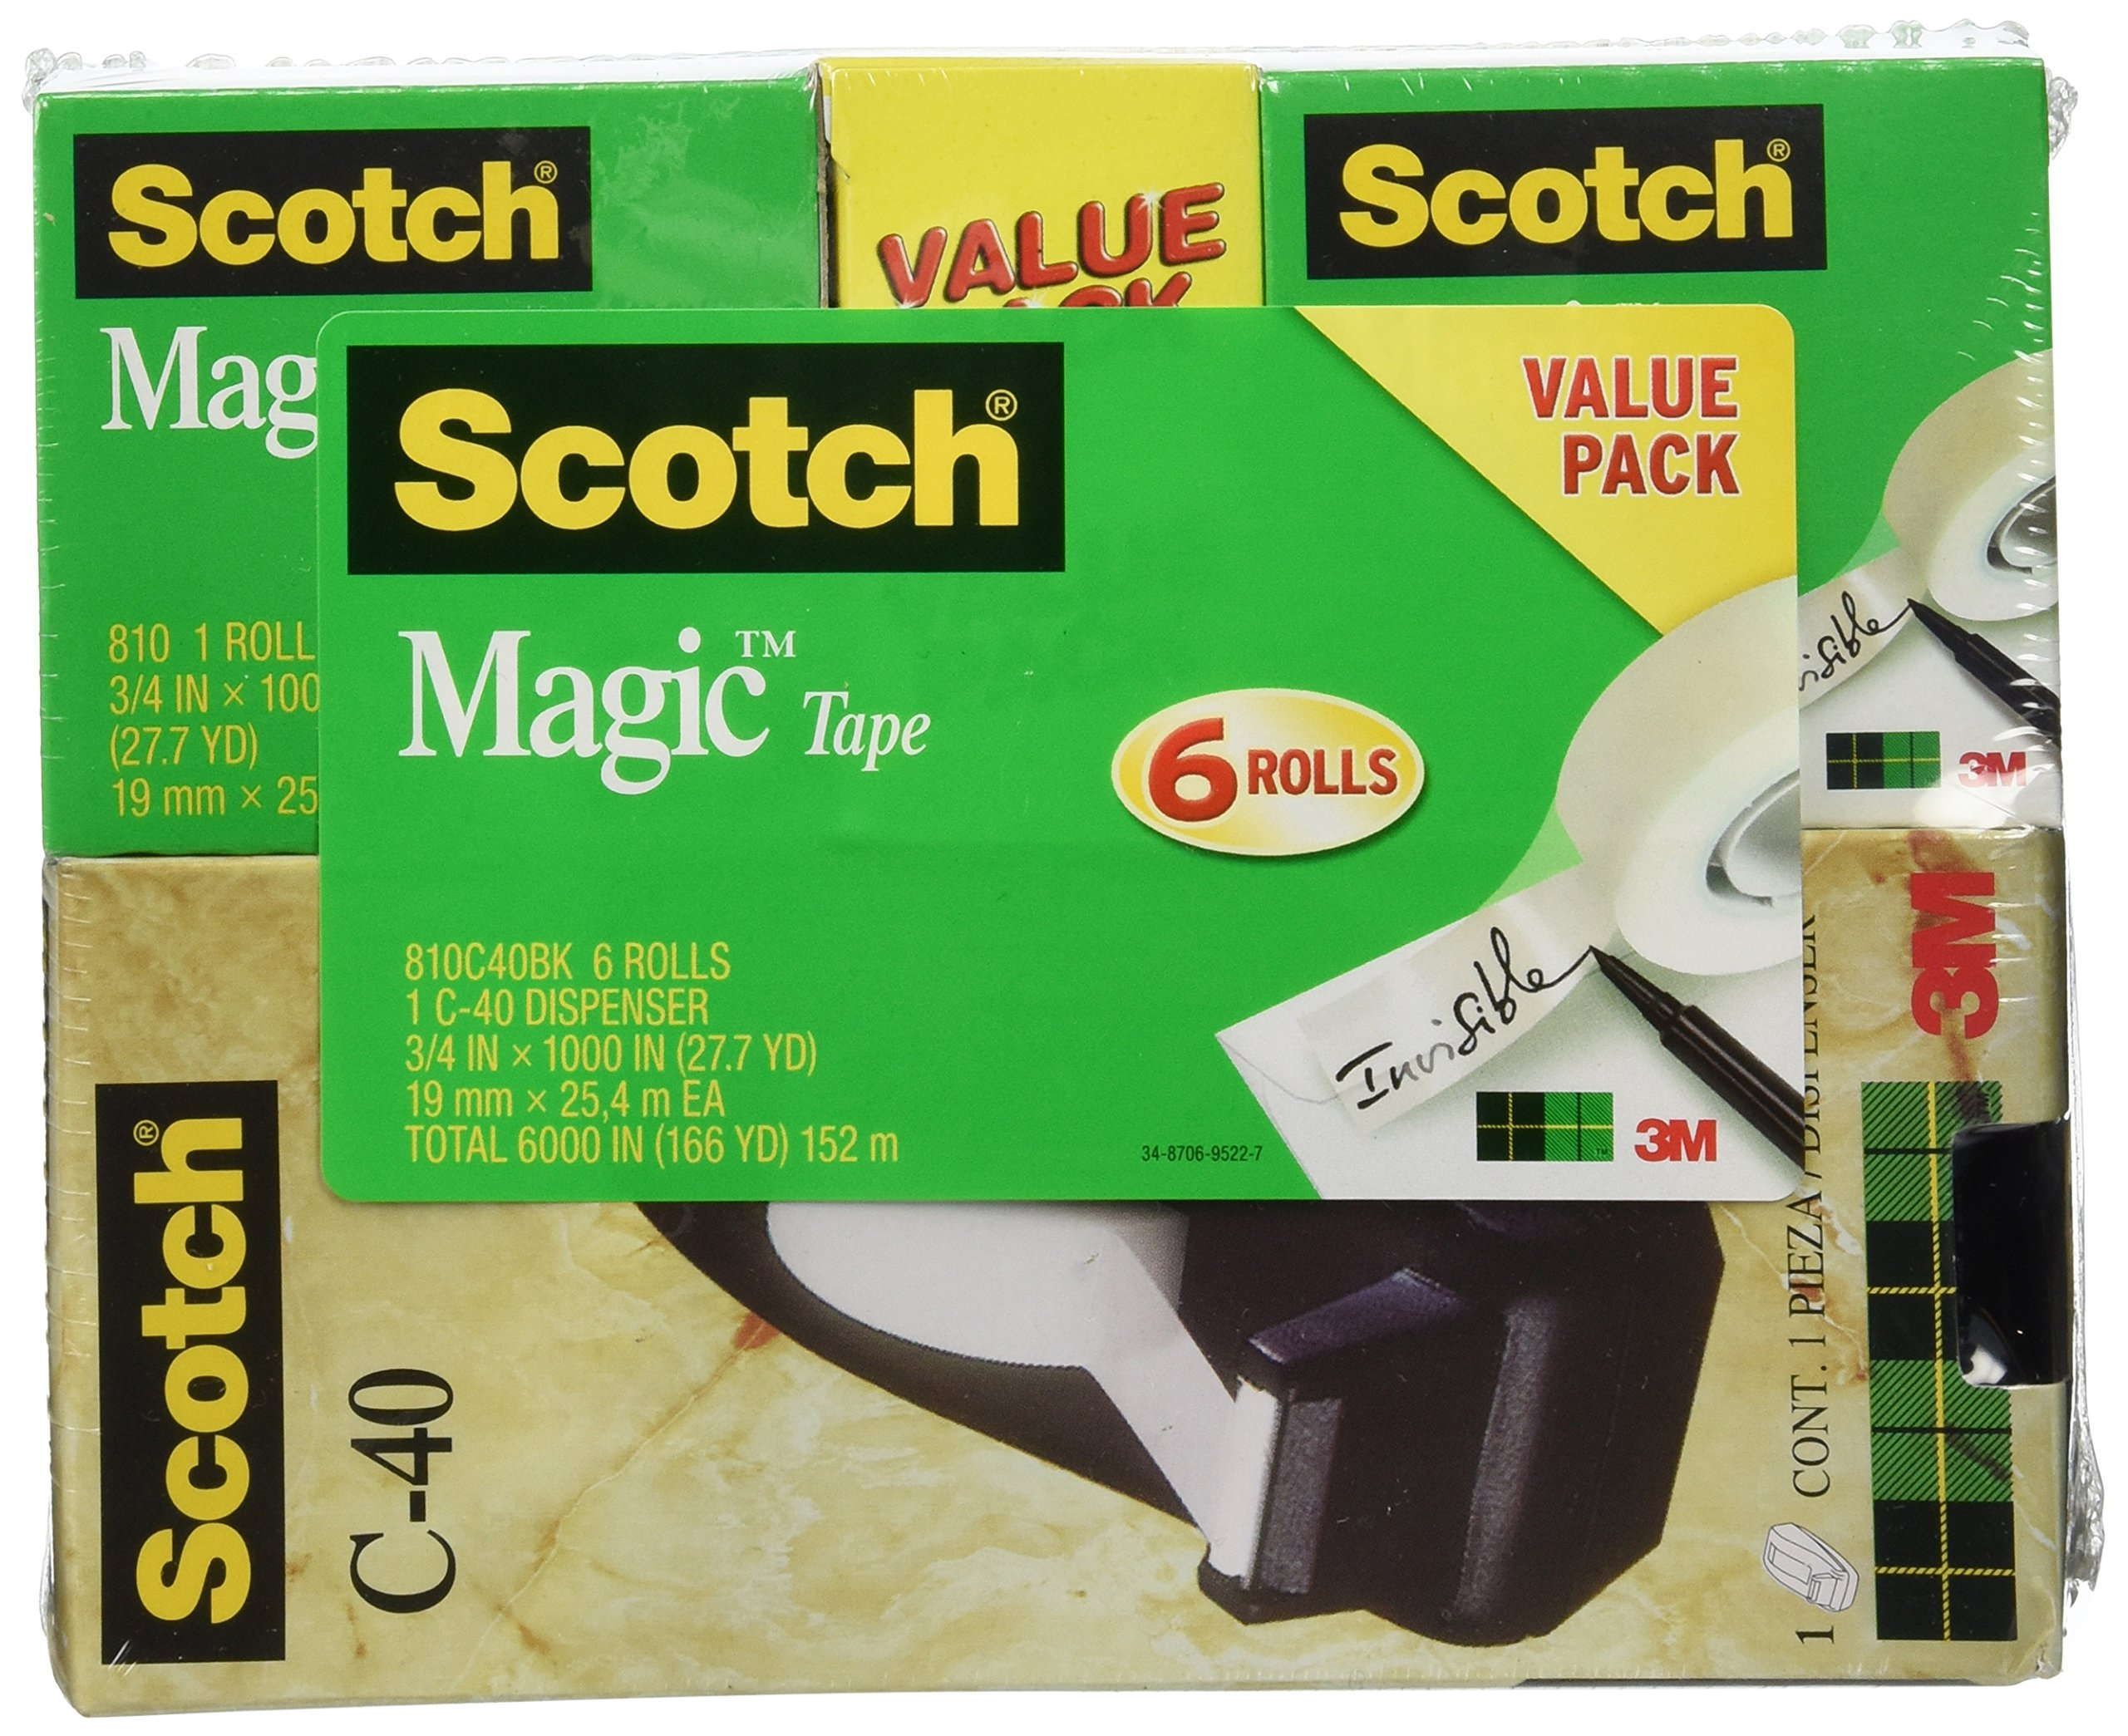 Scotch Magic Tape with C-40 Black Dispenser, Engineered for Office and Home Use, Invisible, Versatile, The Original, Standard Width, 3/4 x 1000 Inches, 6 Rolls, 1 Dispenser (810C40BK)